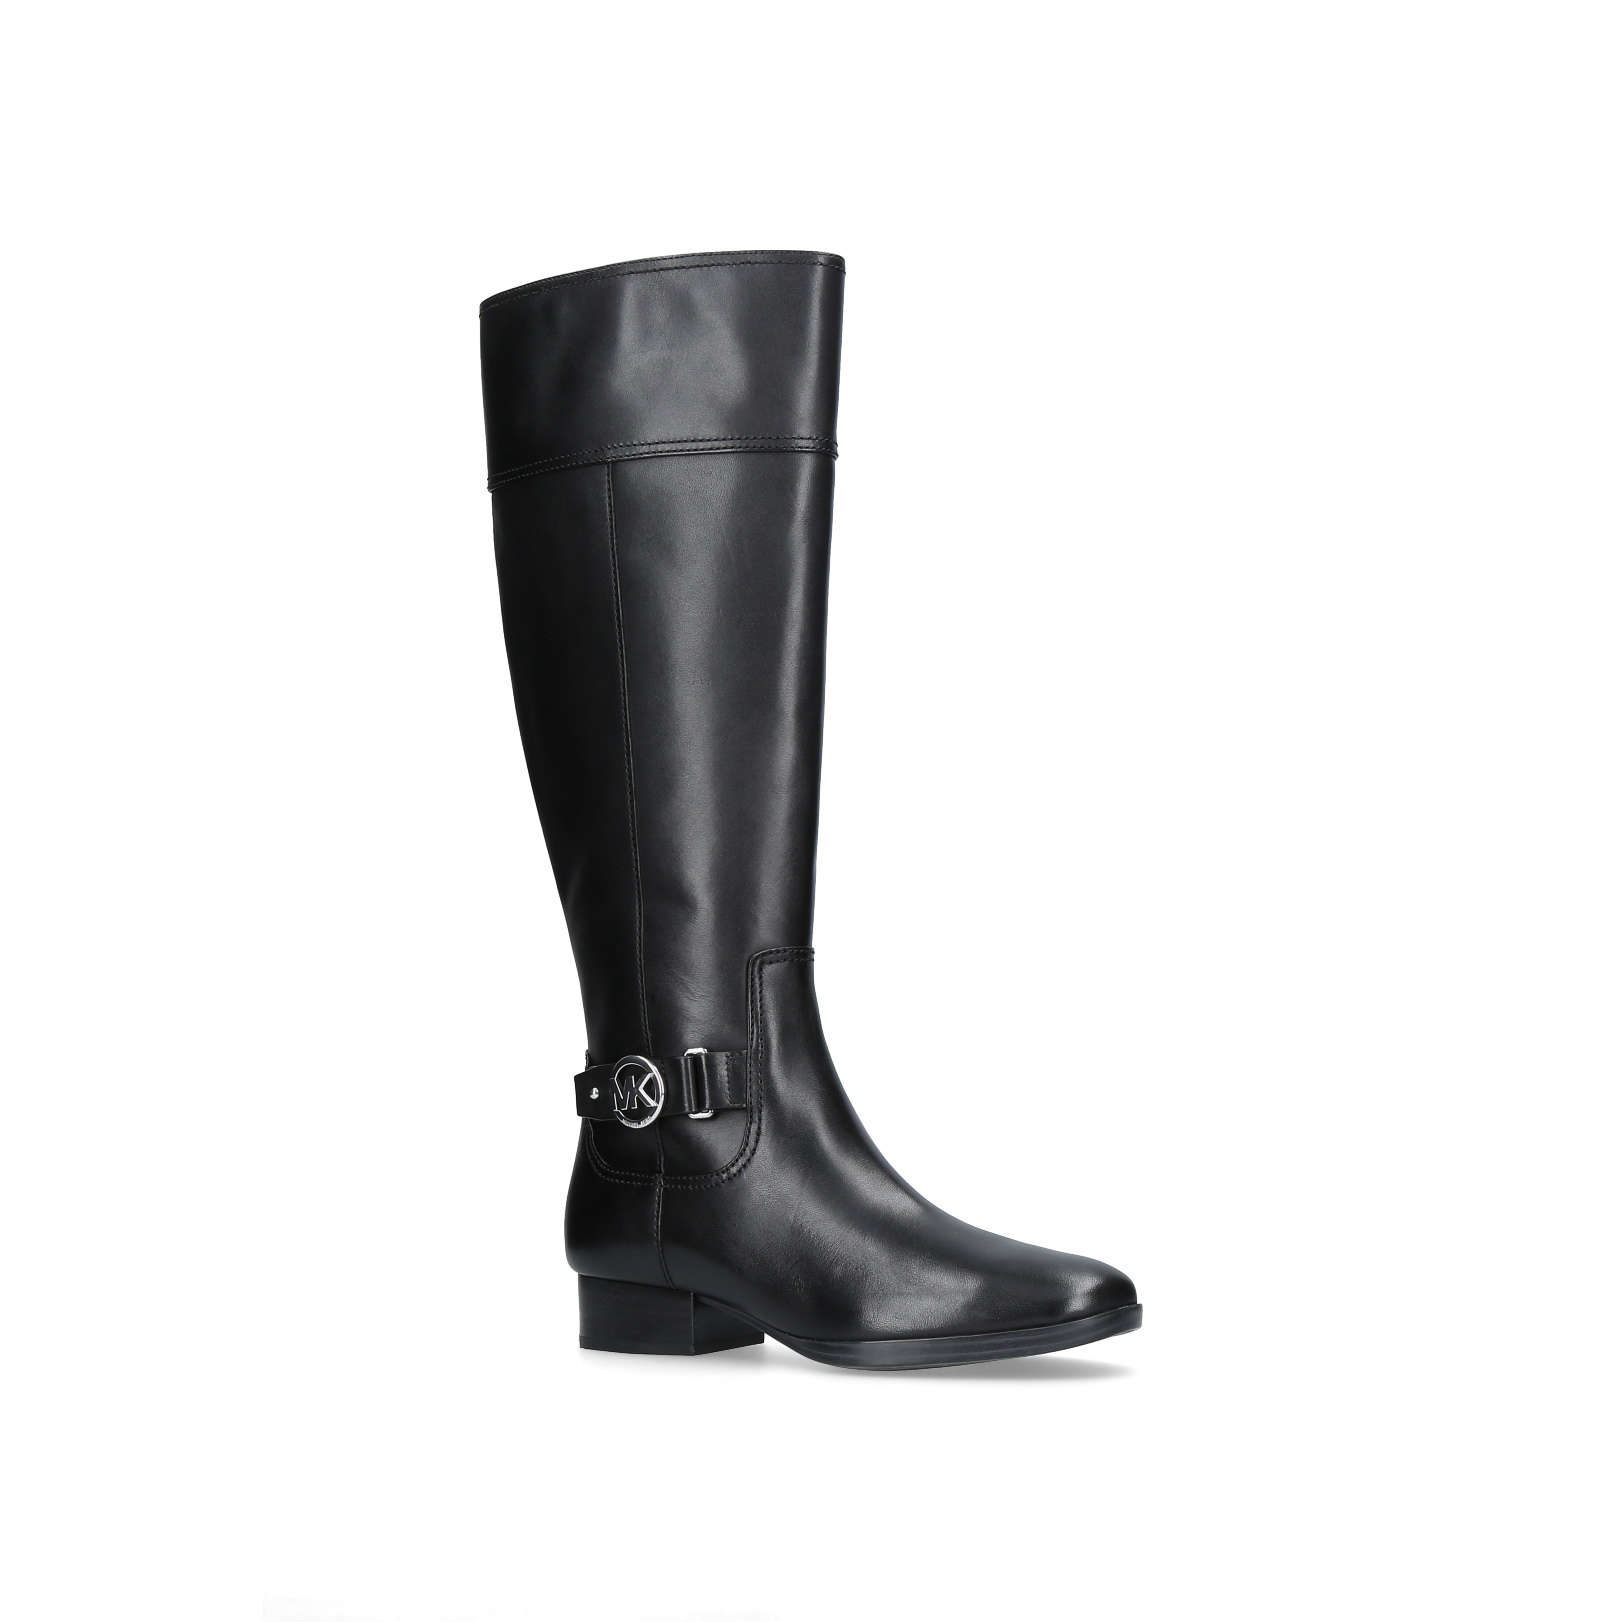 3343f82a05a2 ... Michael Michael Kors    HARLAND BOOT. HARLAND BOOT